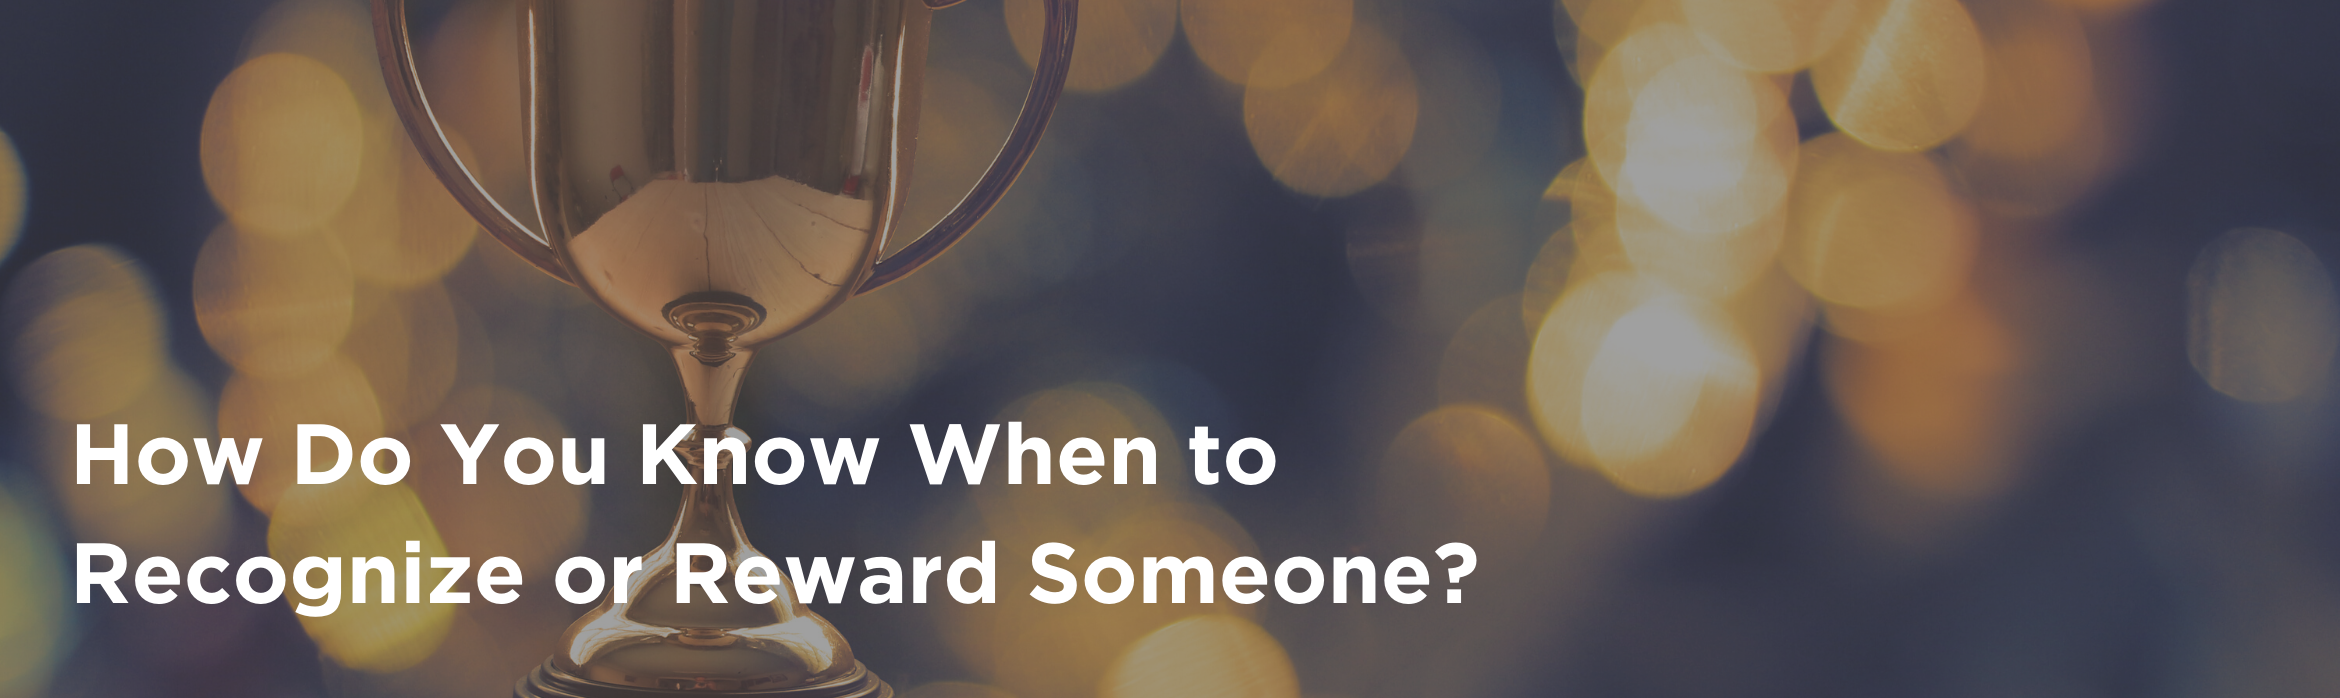 How Do You Know When to Recognize or Reward Someone?